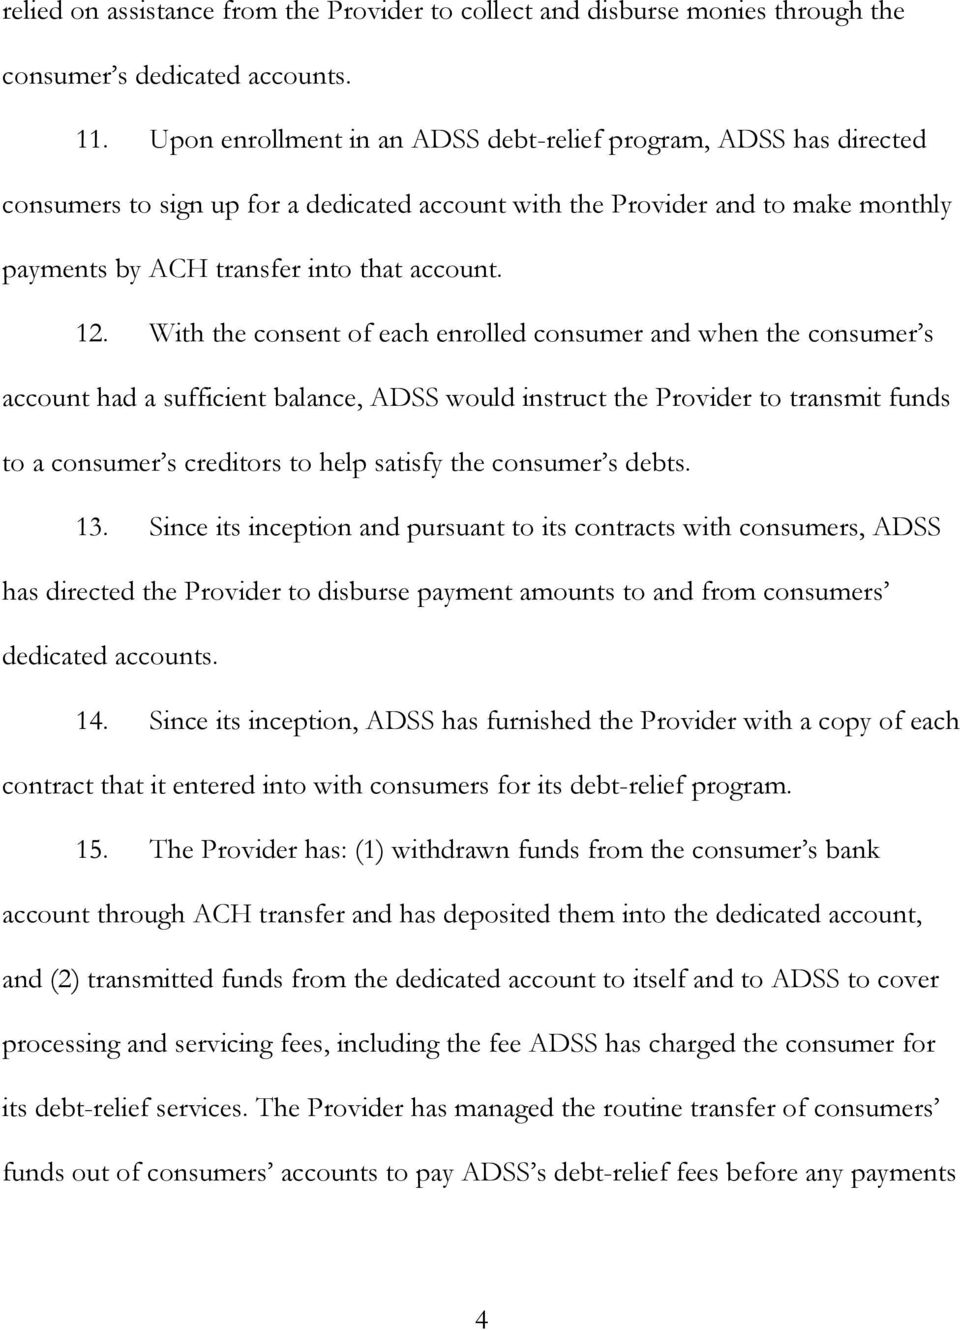 With the consent of each enrolled consumer and when the consumer s account had a sufficient balance, ADSS would instruct the Provider to transmit funds to a consumer s creditors to help satisfy the